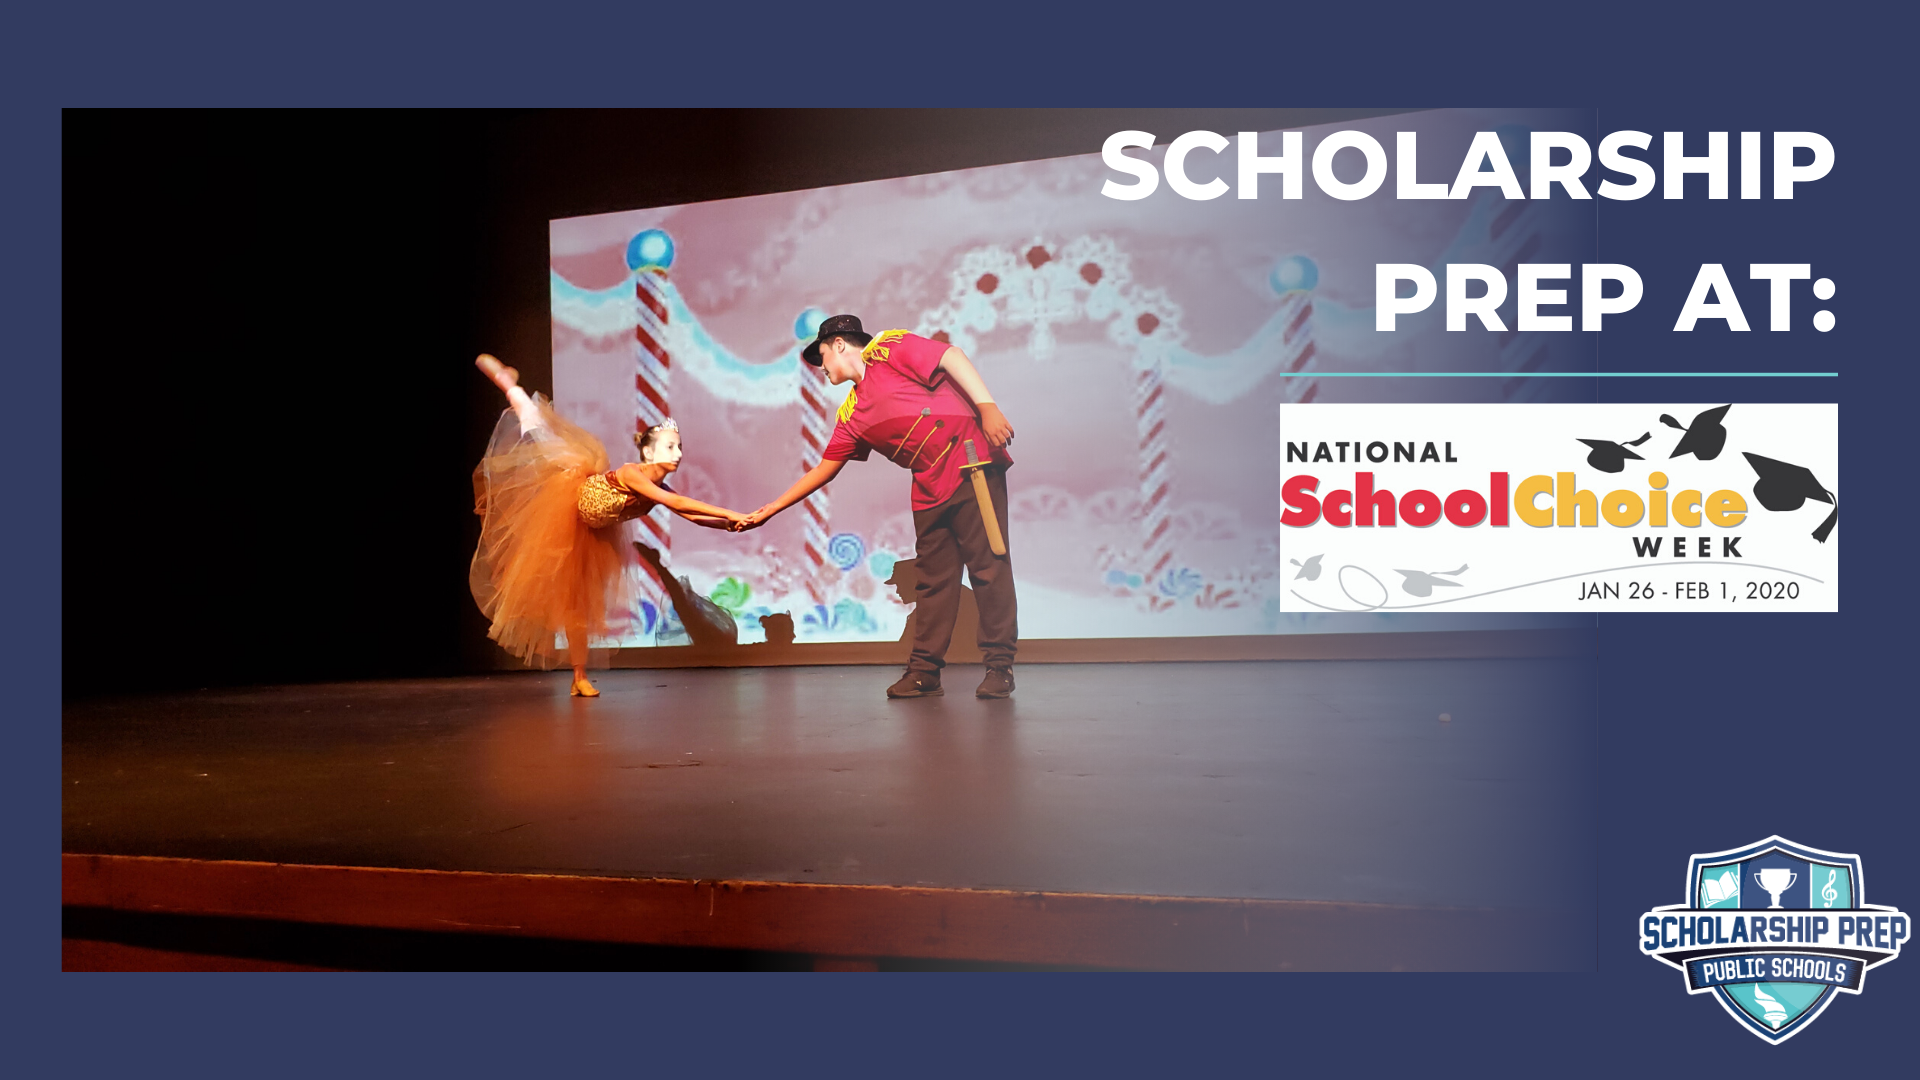 Oceanside Scholars Performing at National School Choice Week Event in Long Beach